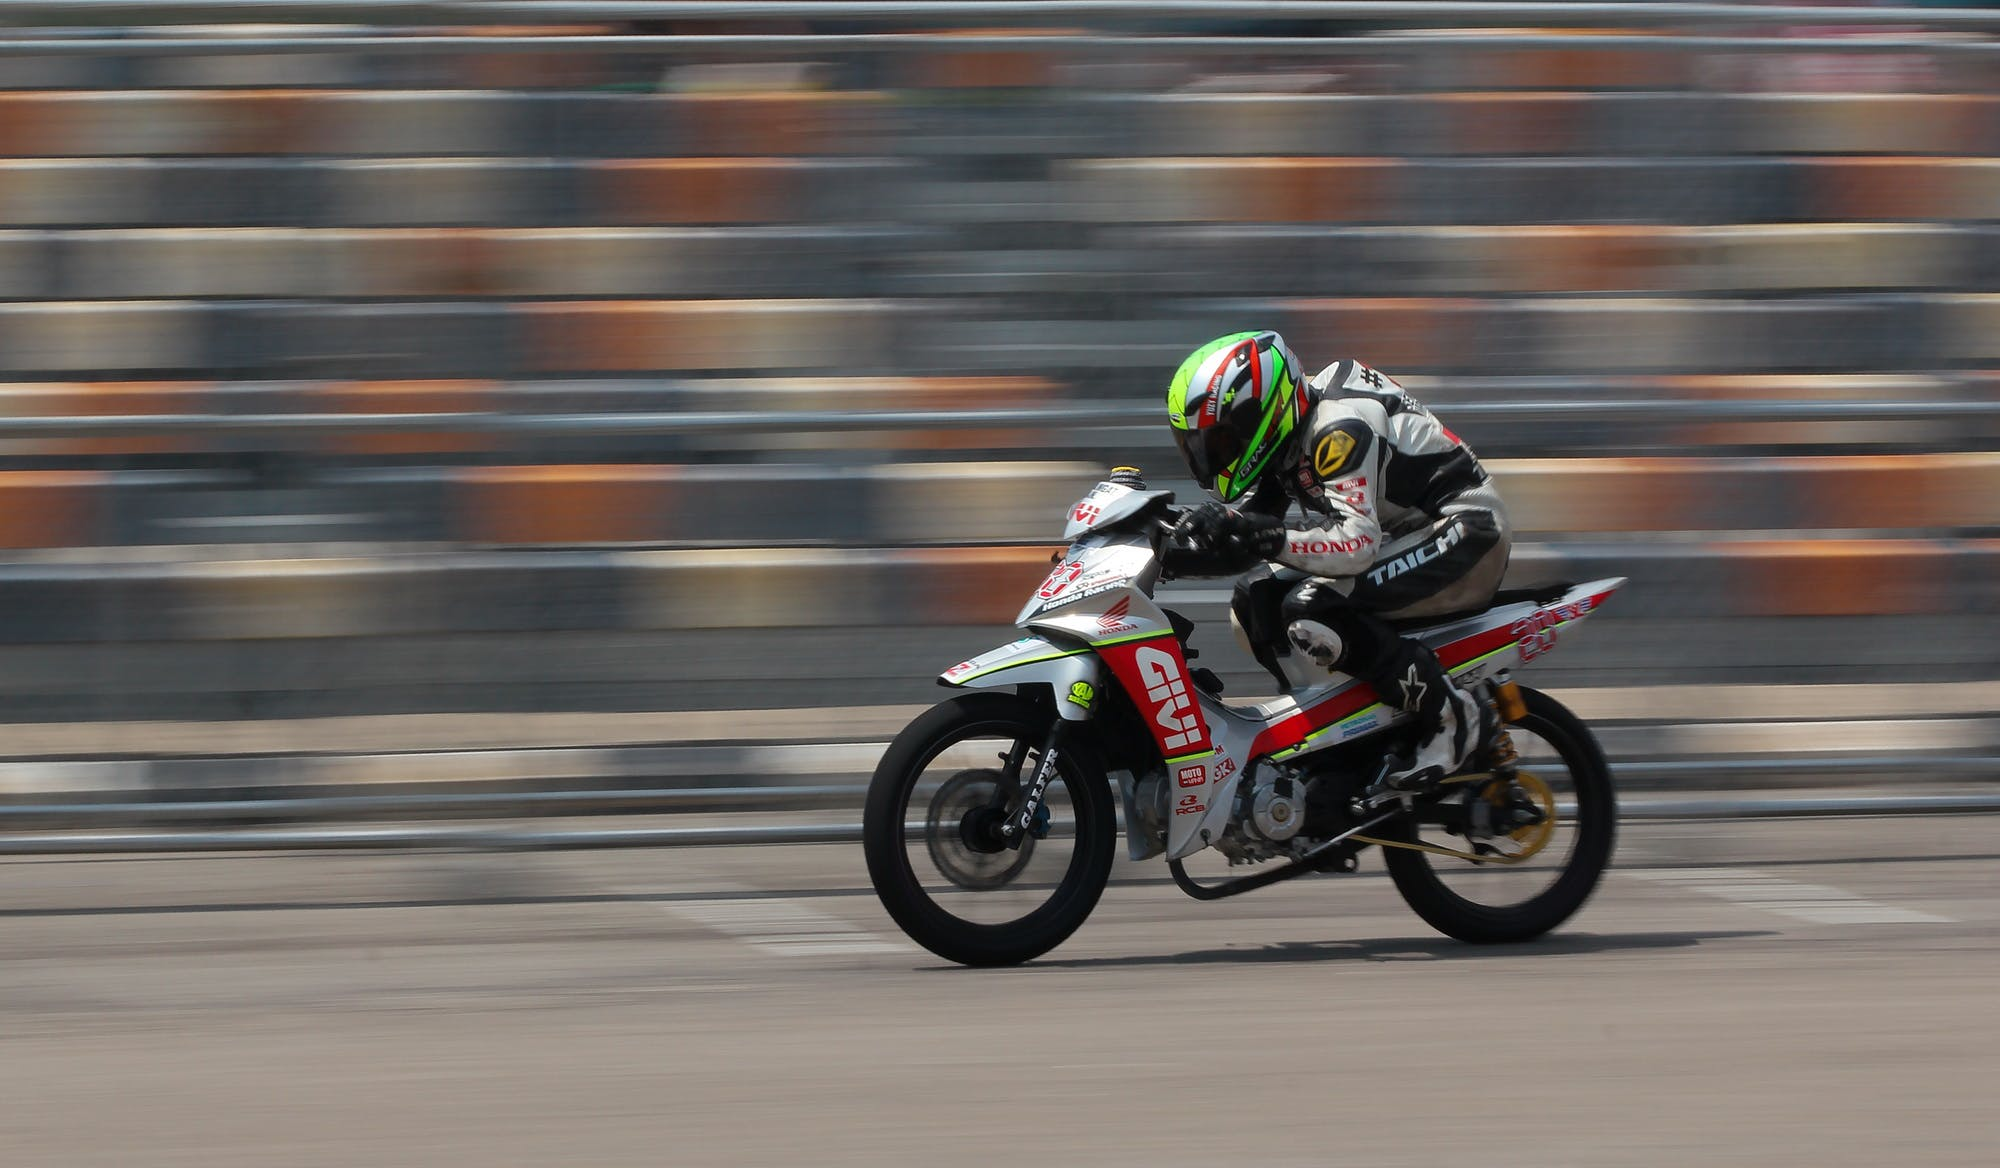 Motorcycle Racer on Silver Motorcycle